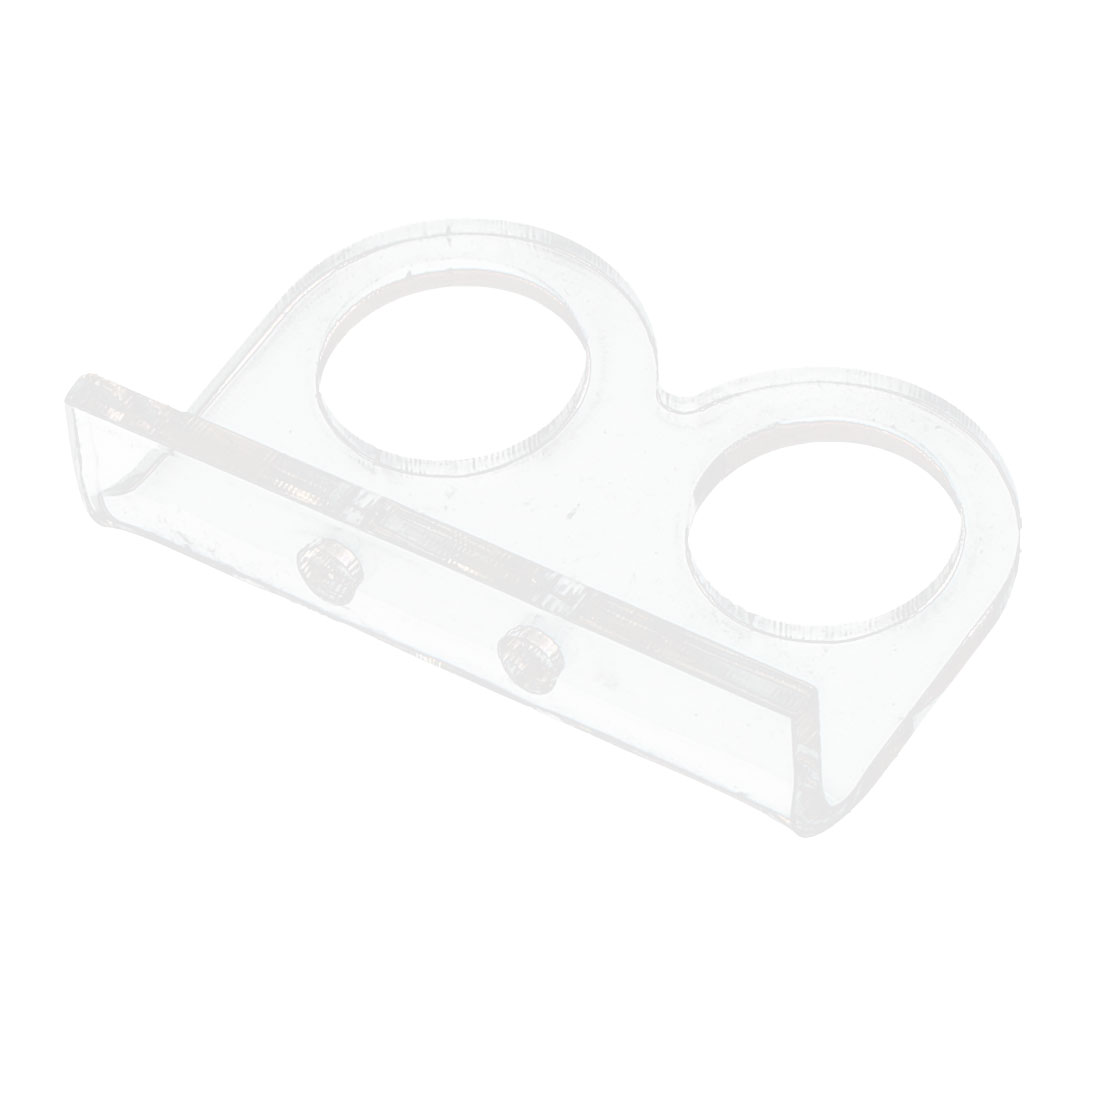 Ultrasonic Sensor Module Clear Plastic Fixed Bracket Support Mount Fastener